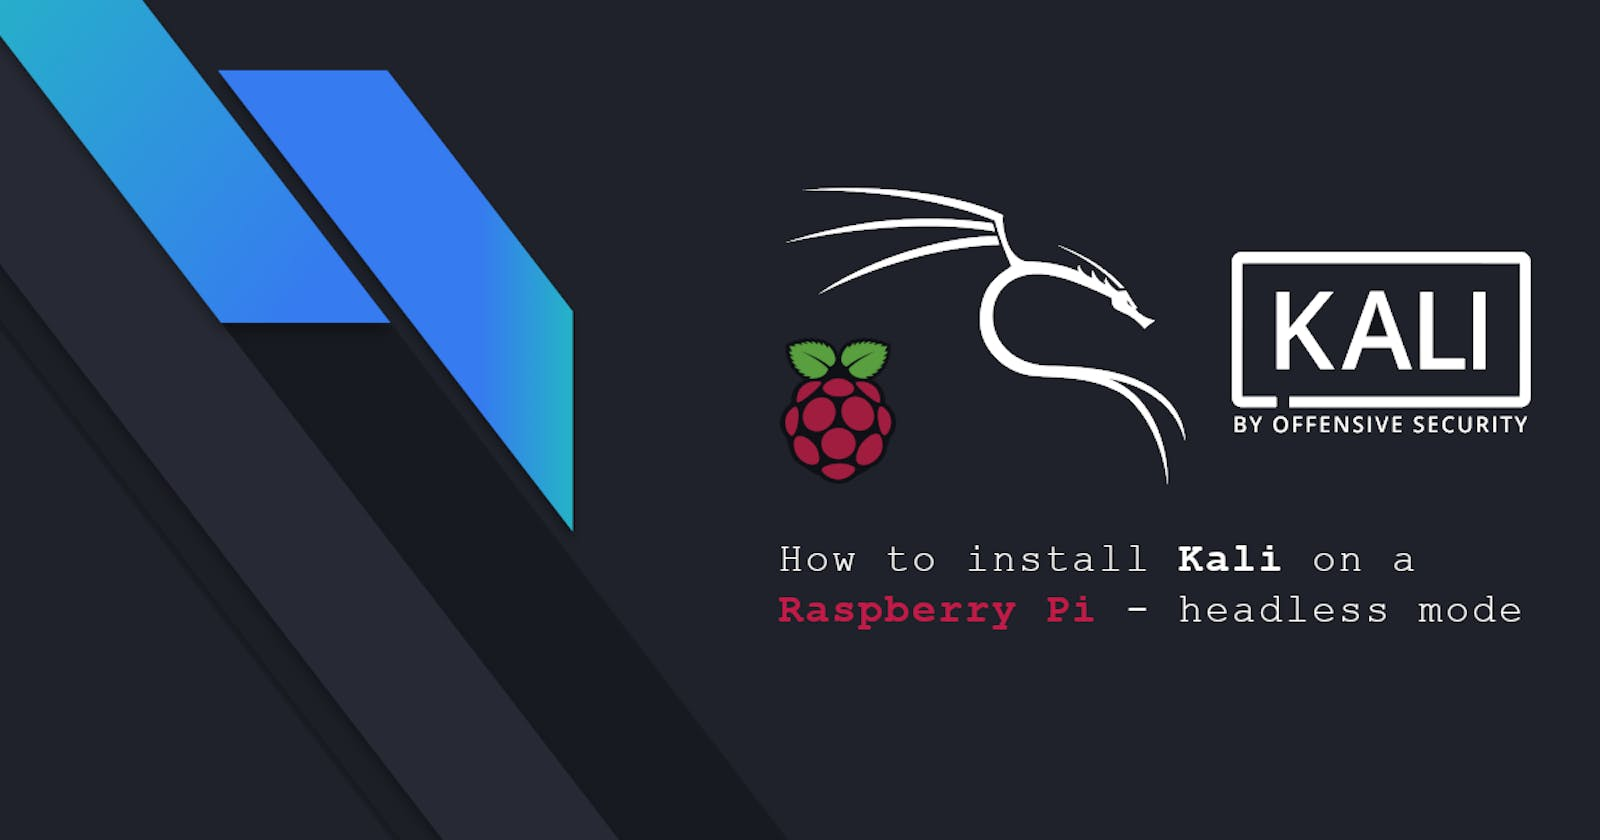 How to install Kali on a Raspberry Pi